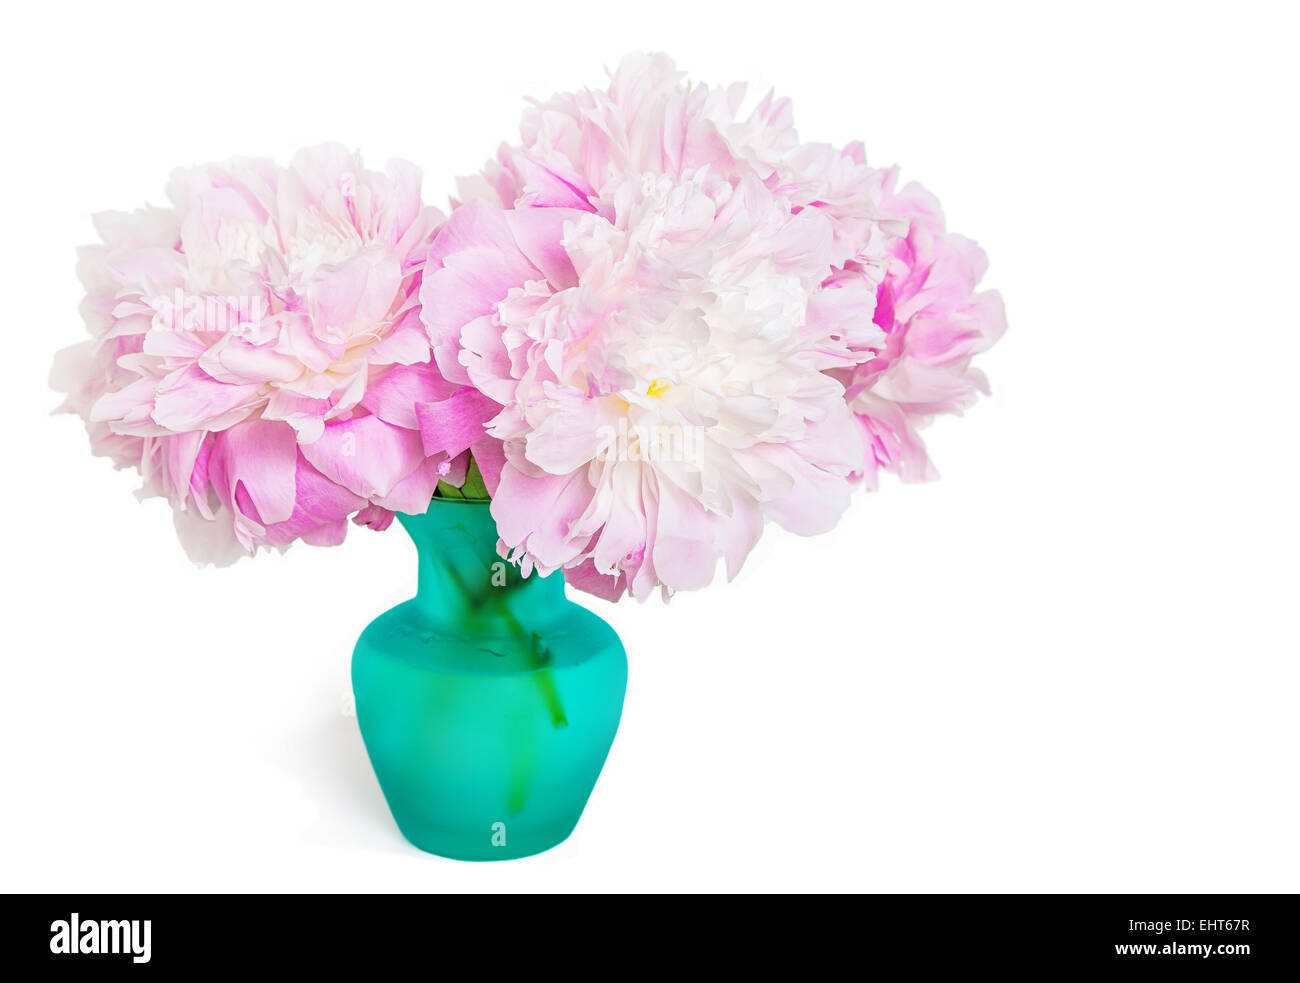 Pink peonies in a teal colored glass vase on white stock photo pink peonies in a teal colored glass vase on white reviewsmspy